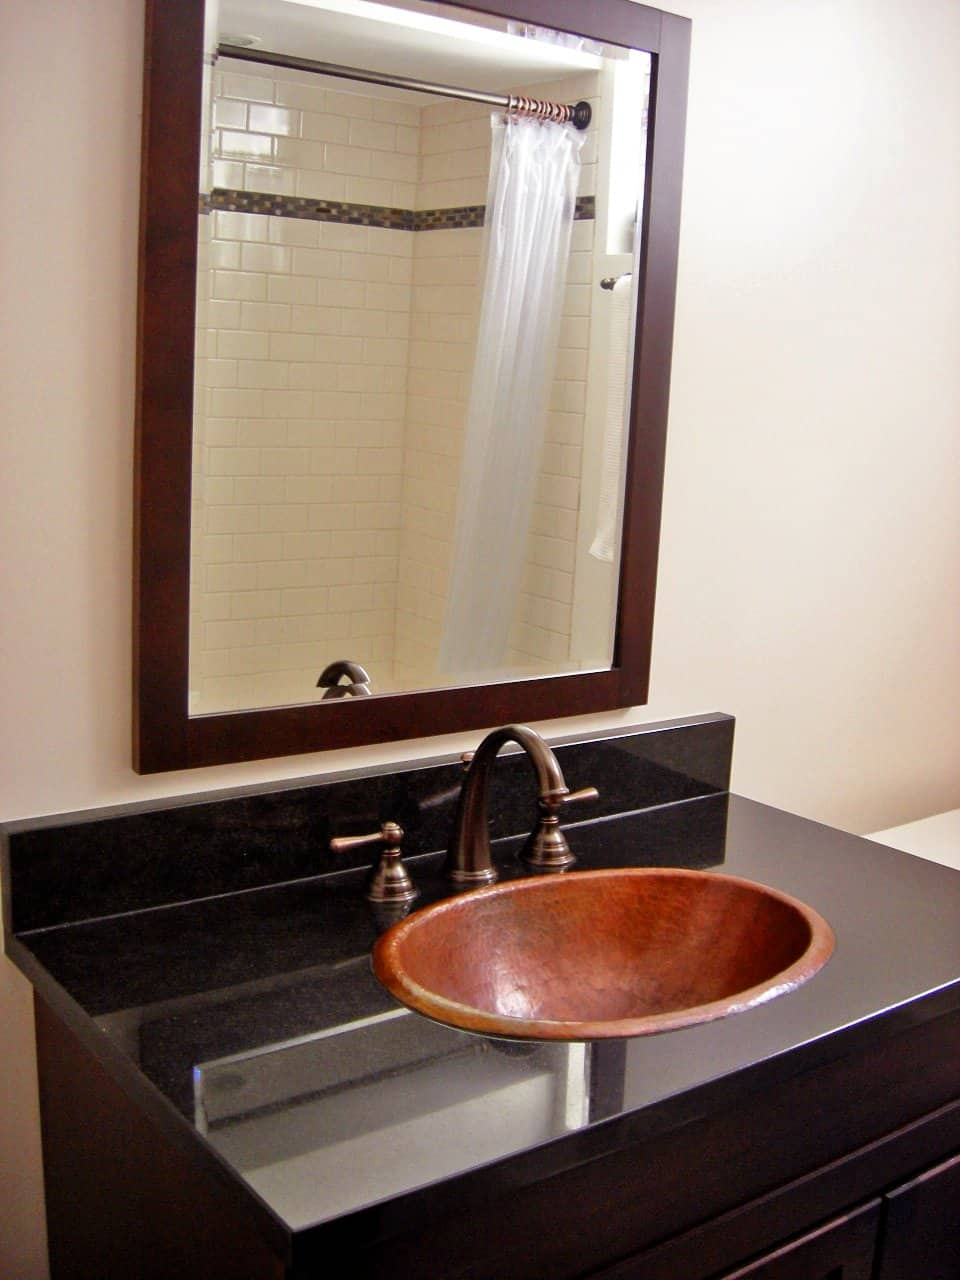 bathroom vanity with 17inch oval copper sink and black counter